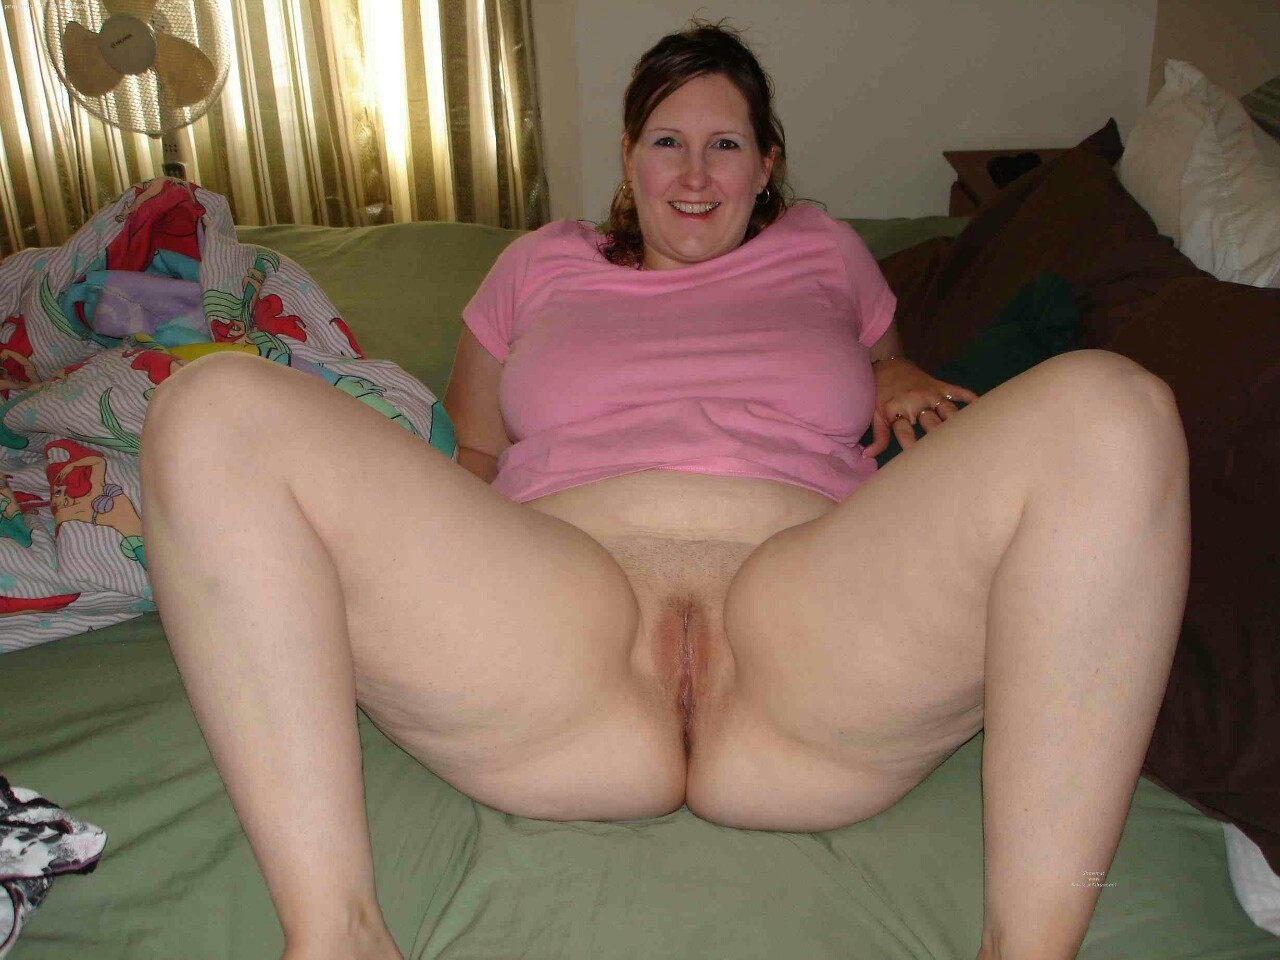 Chubby women shaved spread